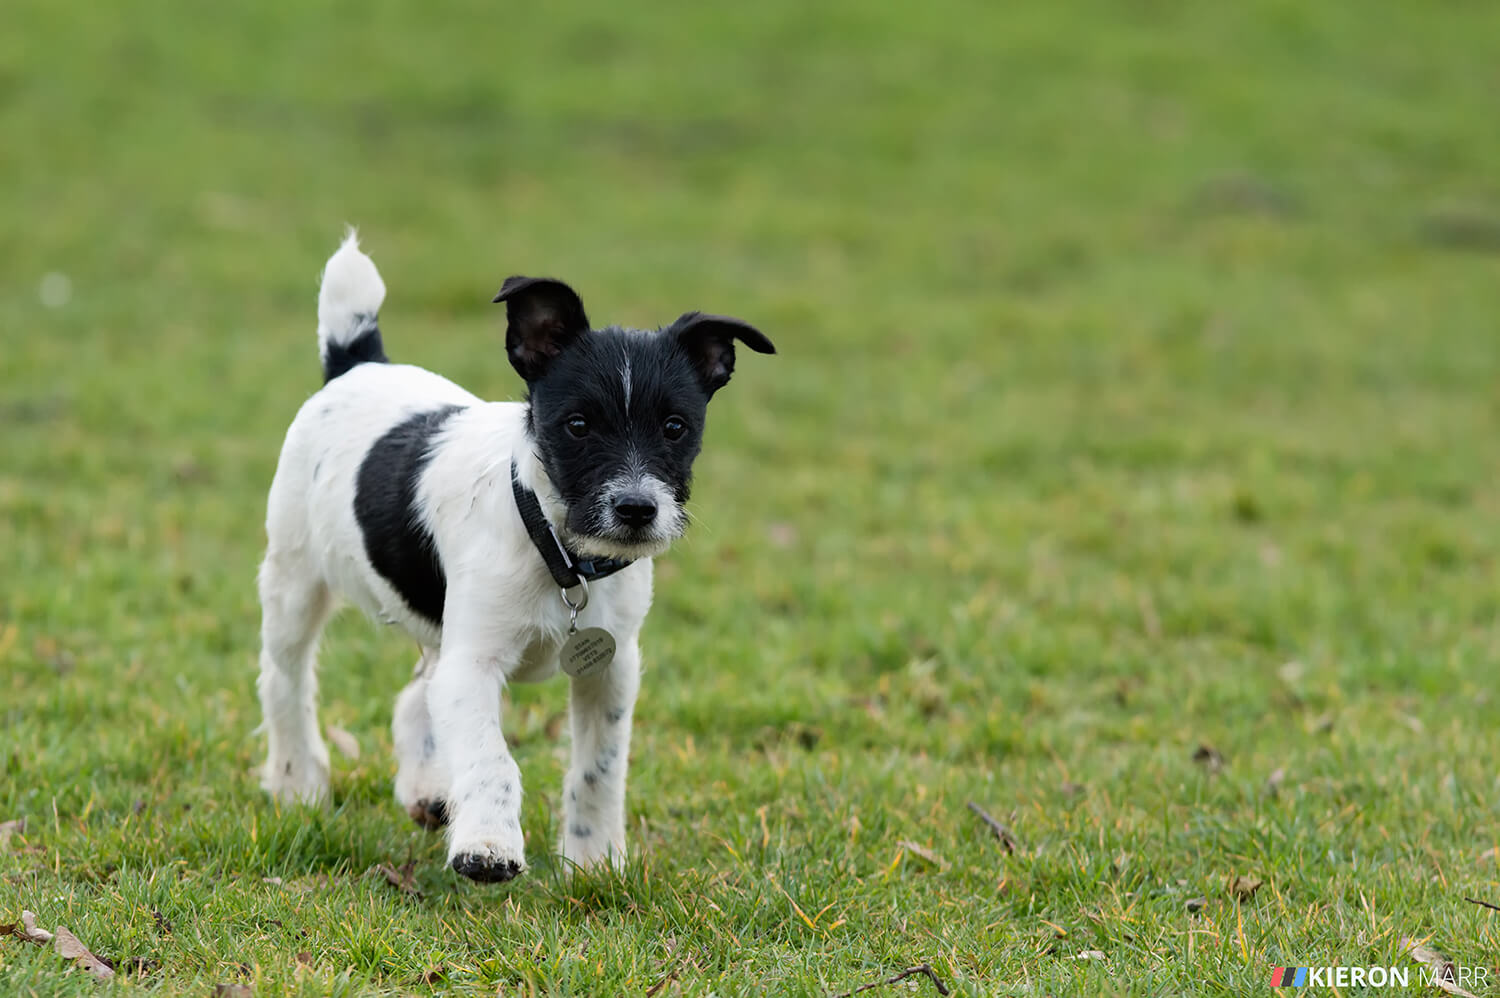 Stan the Jack Russell curious